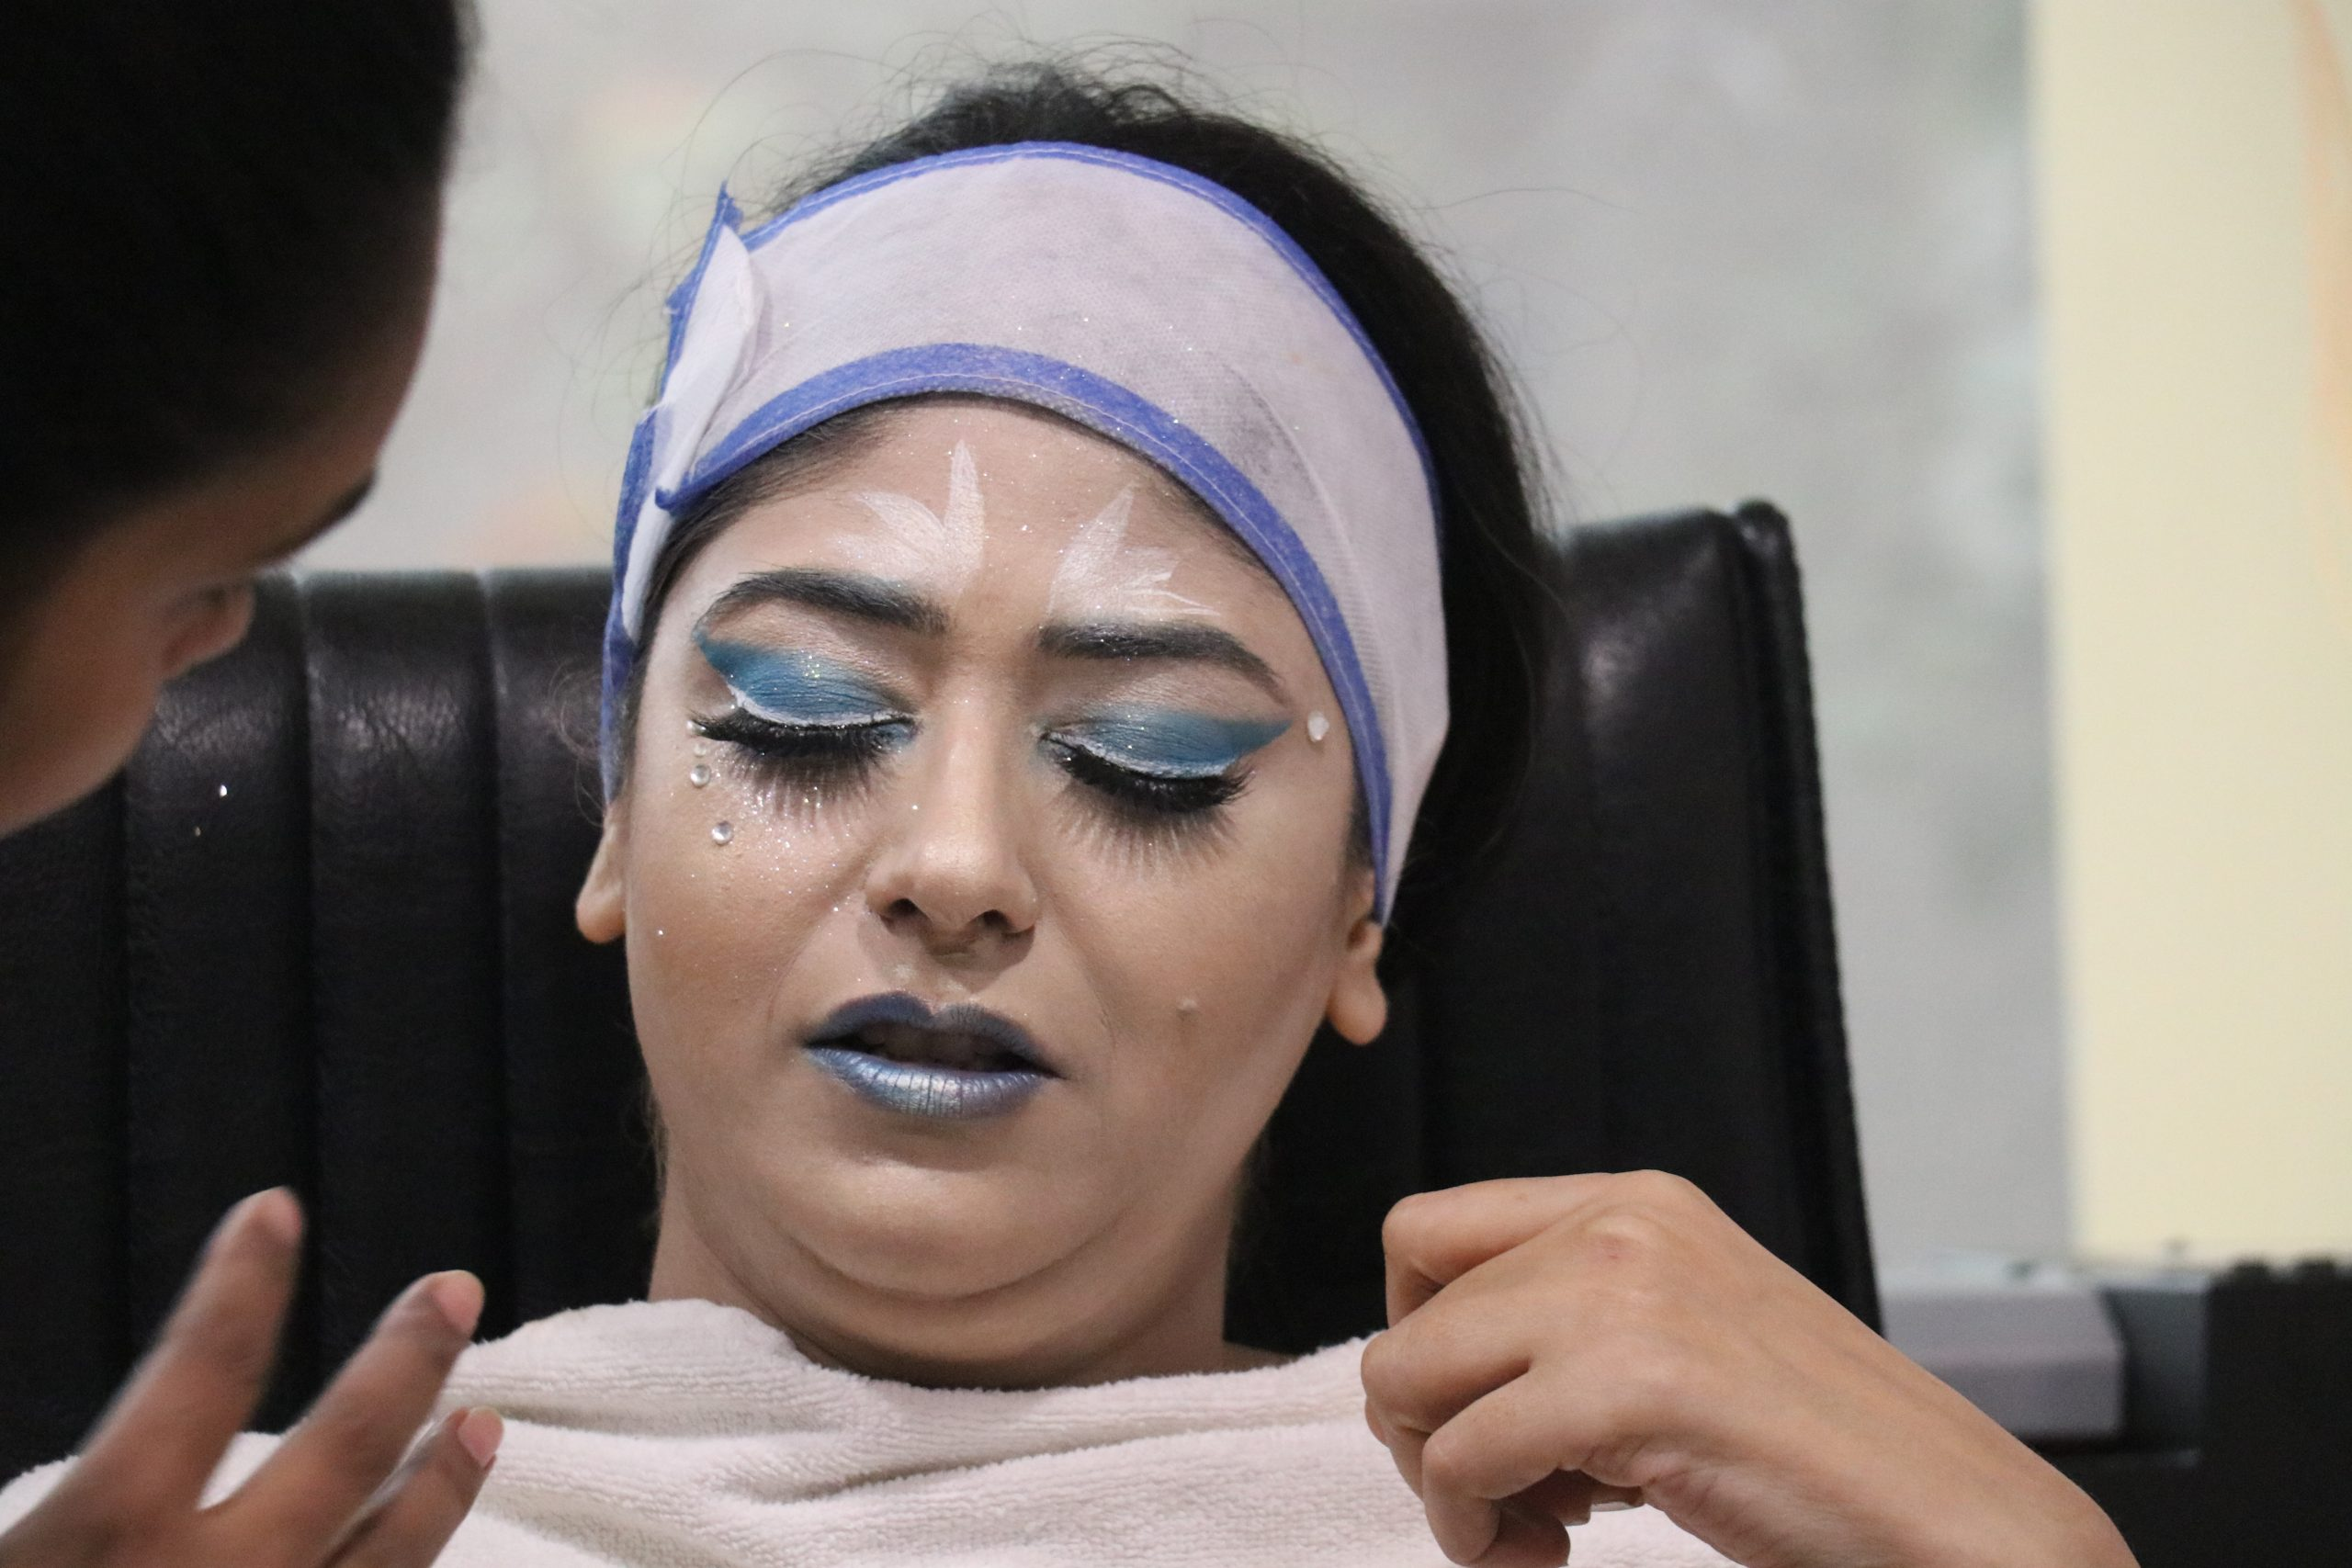 A girl at beauty parlour